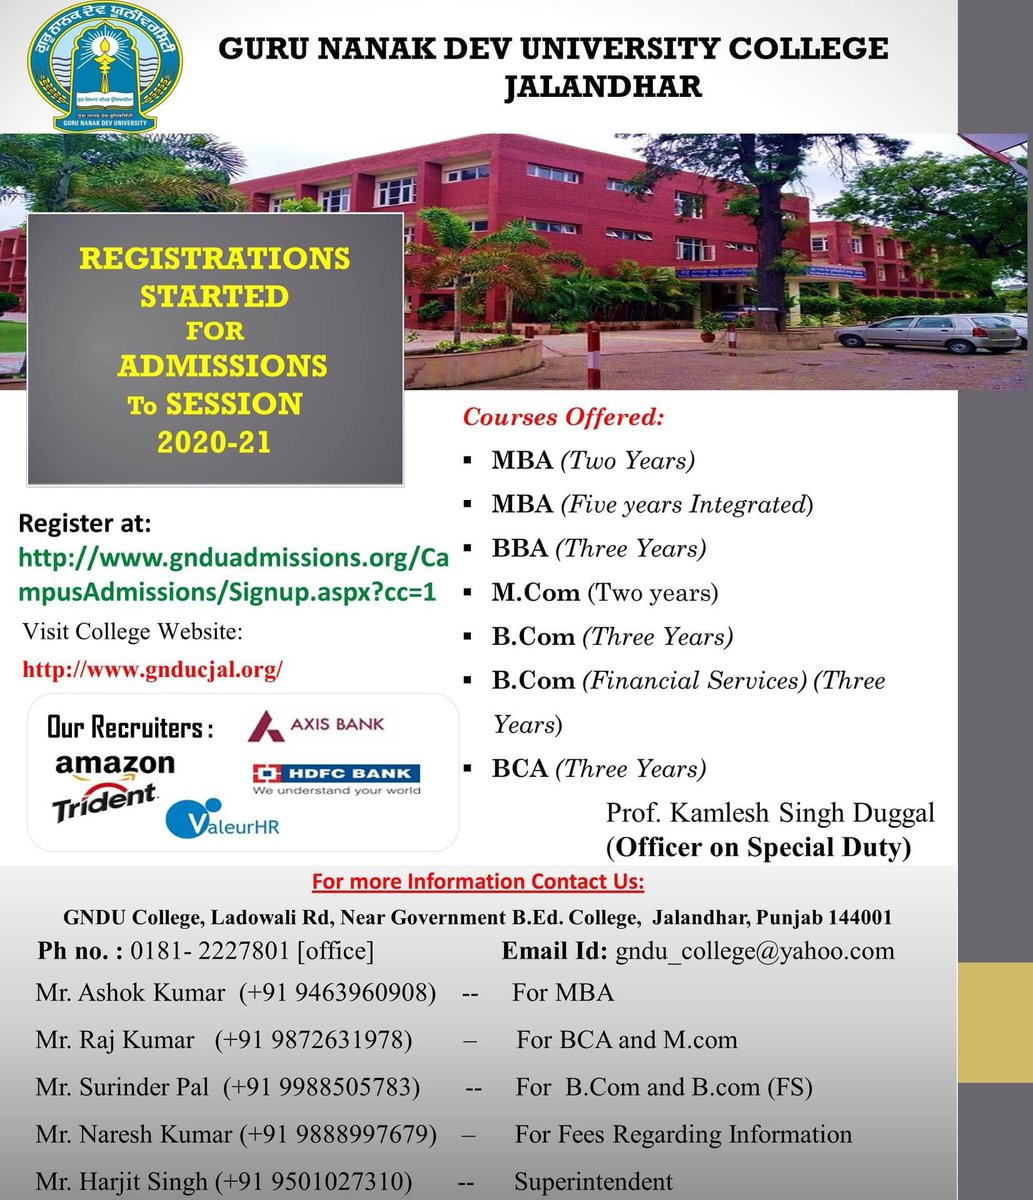 Contact: Mr.Harjit Singh Thind 9501027310 Mr. Ashok Kumar 9463960908-For MBA  Mr. Raj Kumar  9872631978-For BCA and http://M.com Mr. Surinder Pal  9988505783-For  http://B.Com and http://B.com (FS) Mr. Naresh Kumar 9888997679 For Fees Inquirypic.twitter.com/OLLaeyZALM